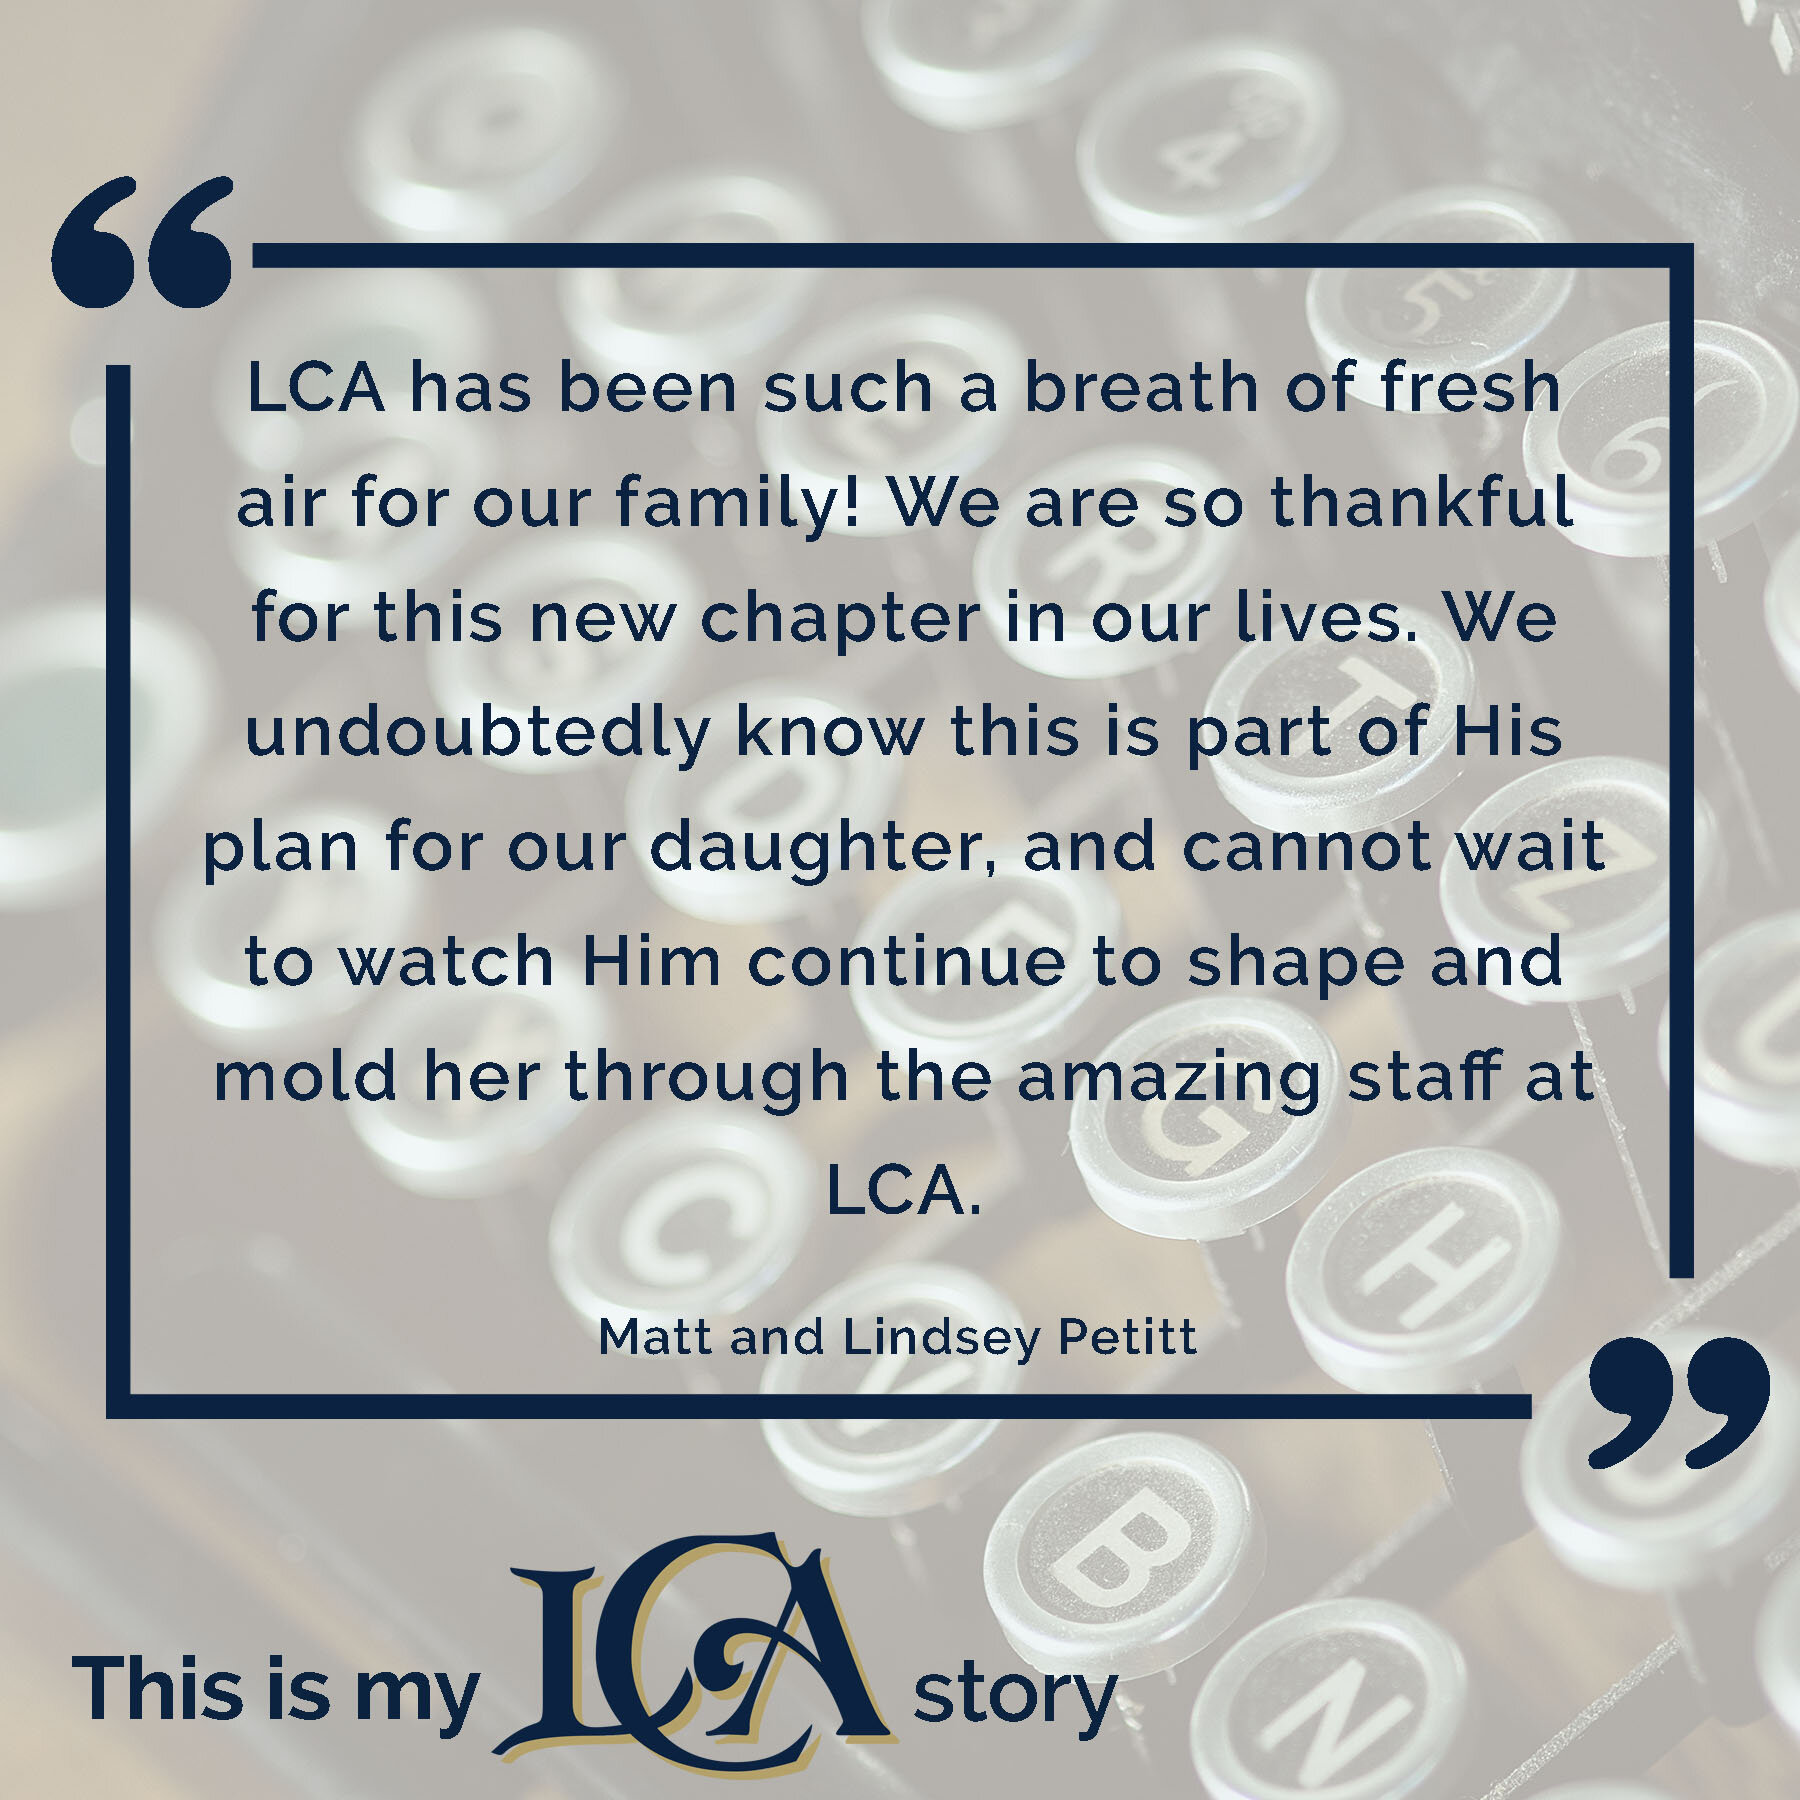 My LCA Story - Matt and Lindsey Petitt.jpg